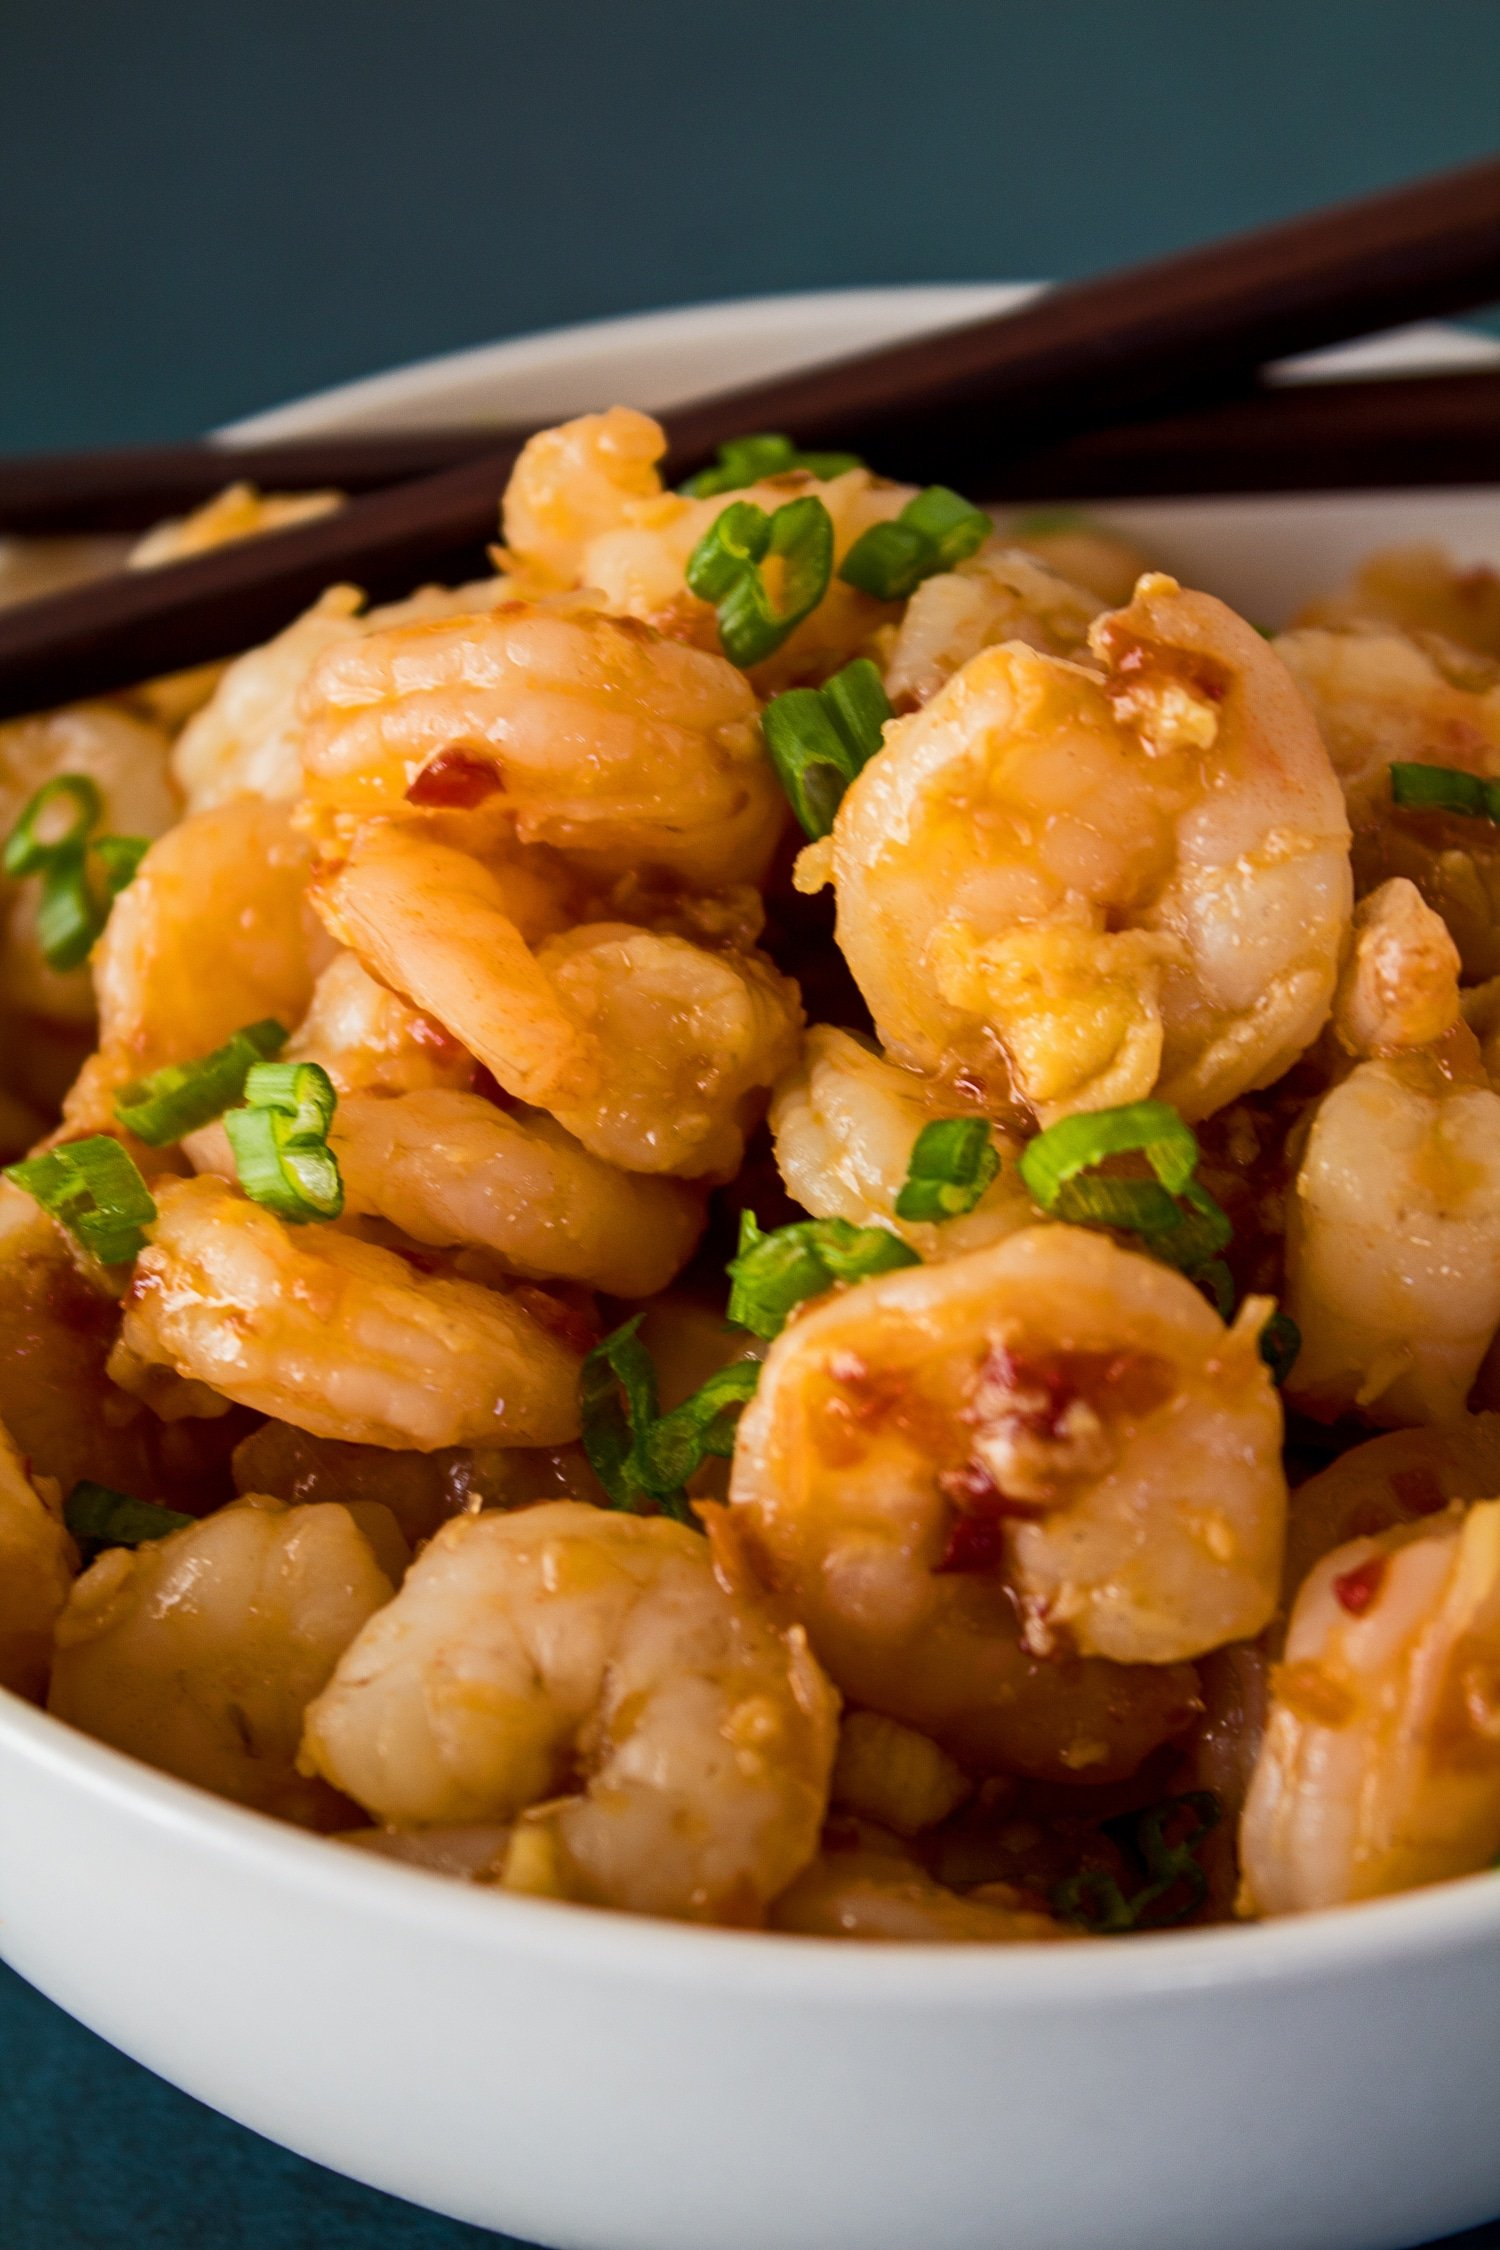 tall vertical image a closeup side view of the served hunan shrimp garnished with chopped green onions served in a white bowl on blue background